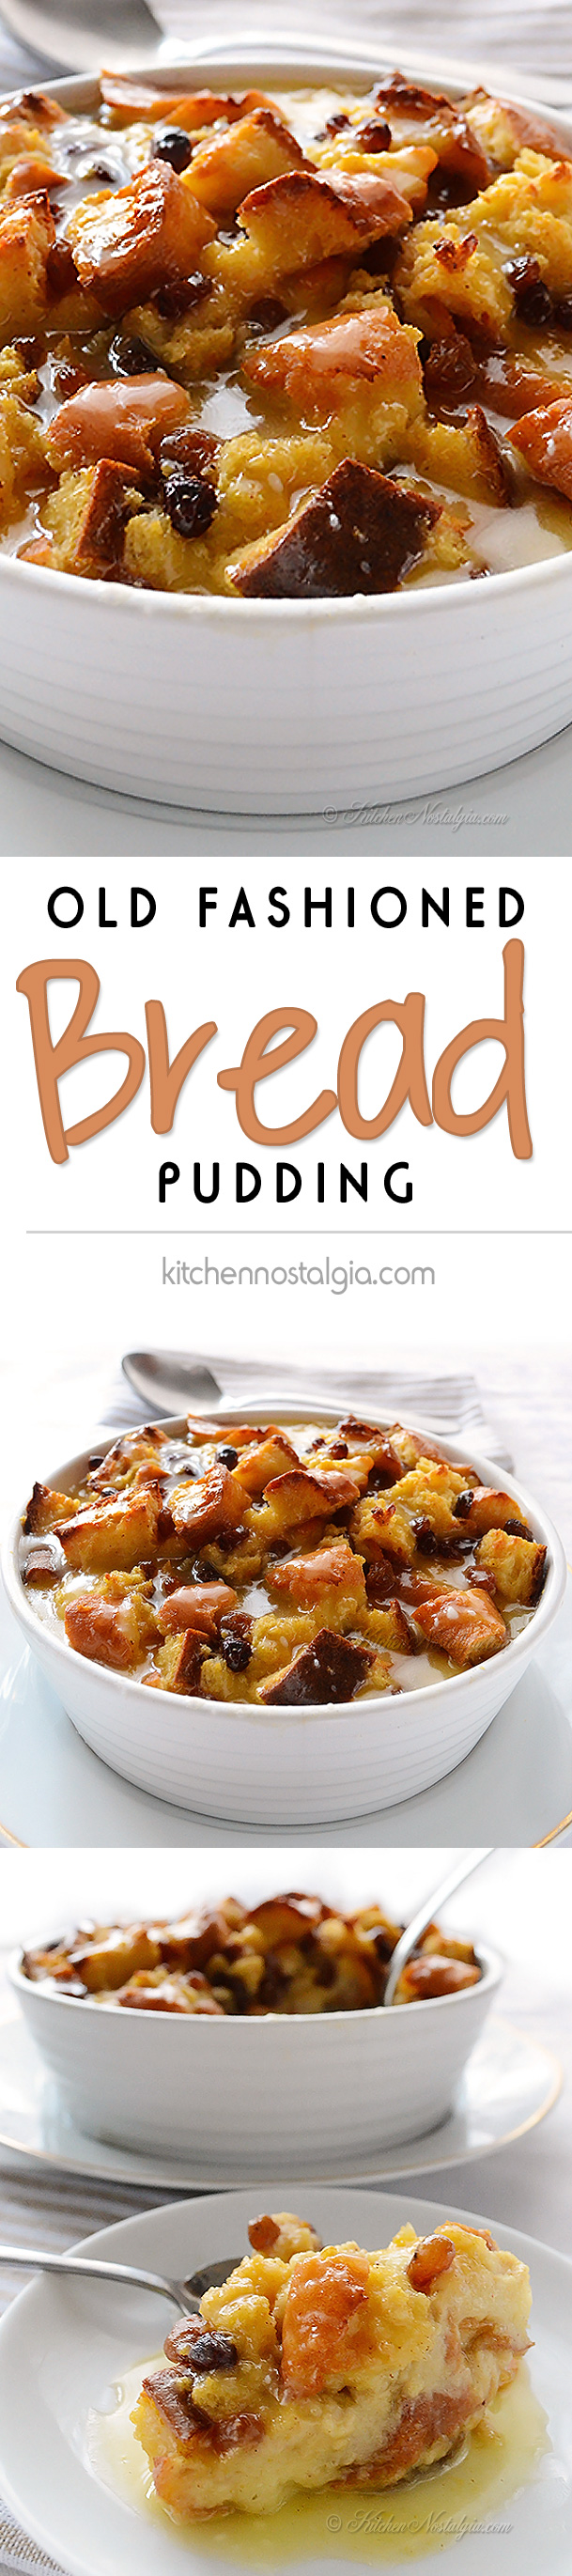 Old Fashioned Bread Pudding - from kitchennostalgia.com